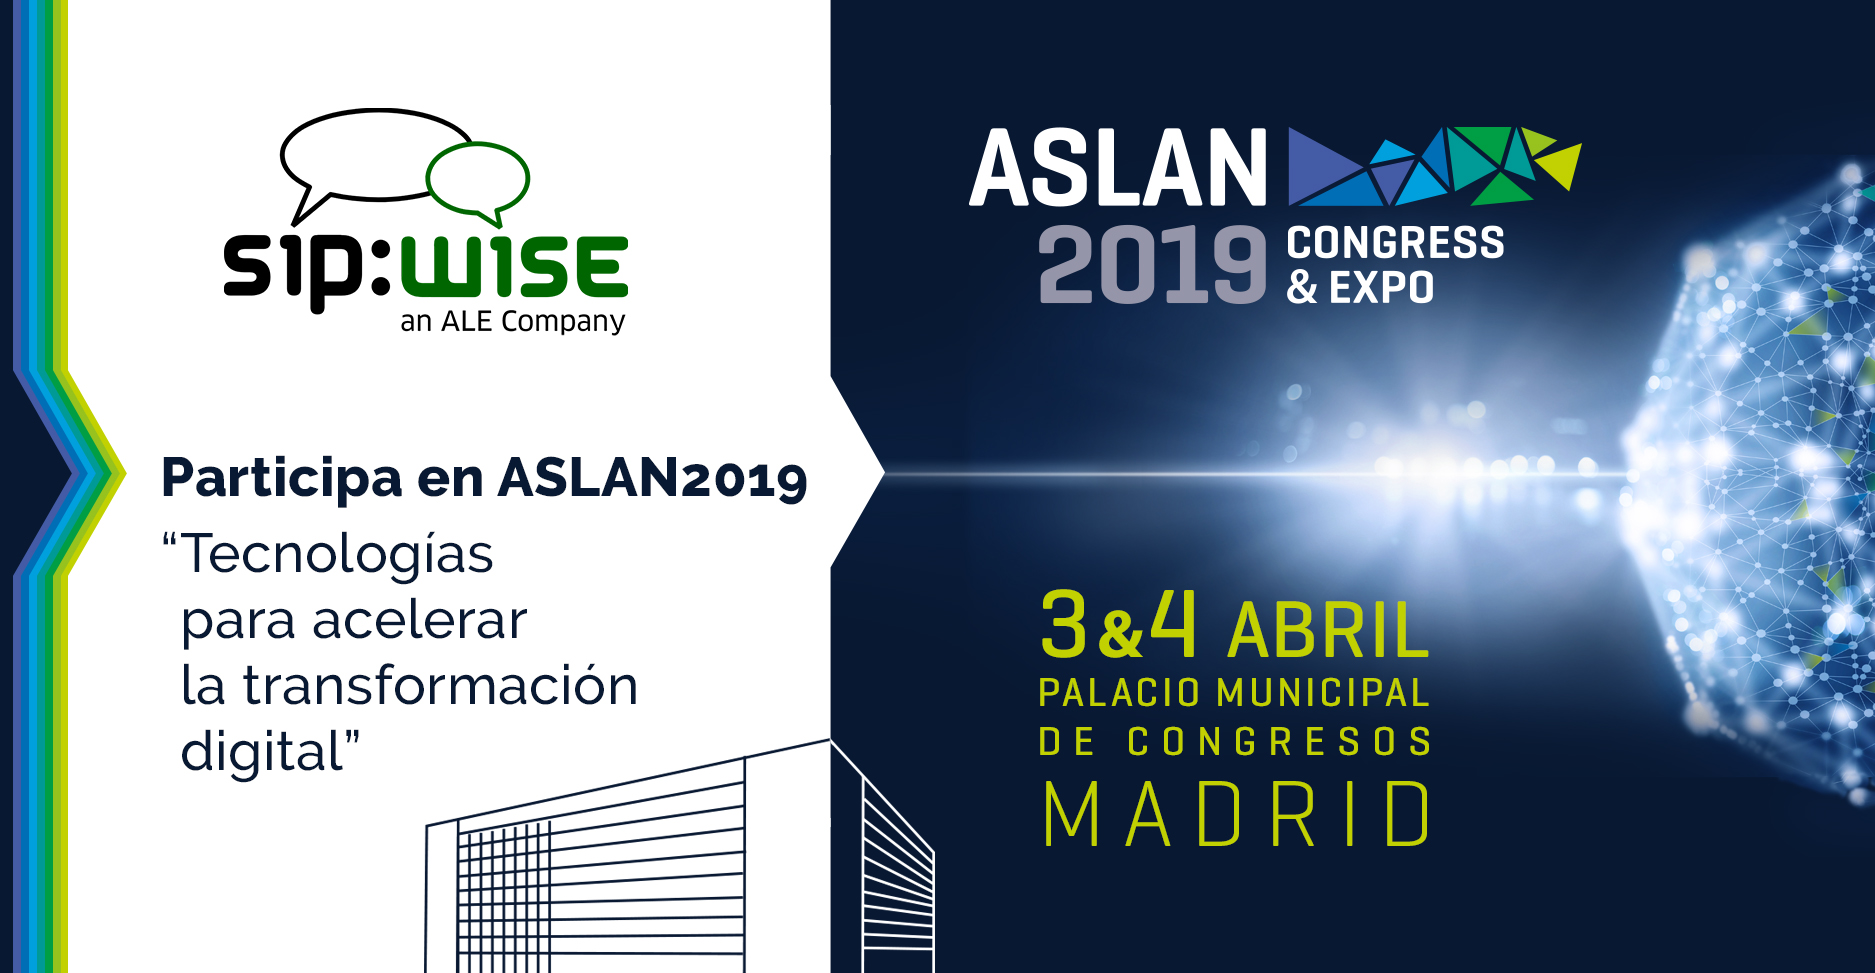 Sipwise will exhibit at ASLAN 2019 on April 3 & 4 in Madrid, Spain.